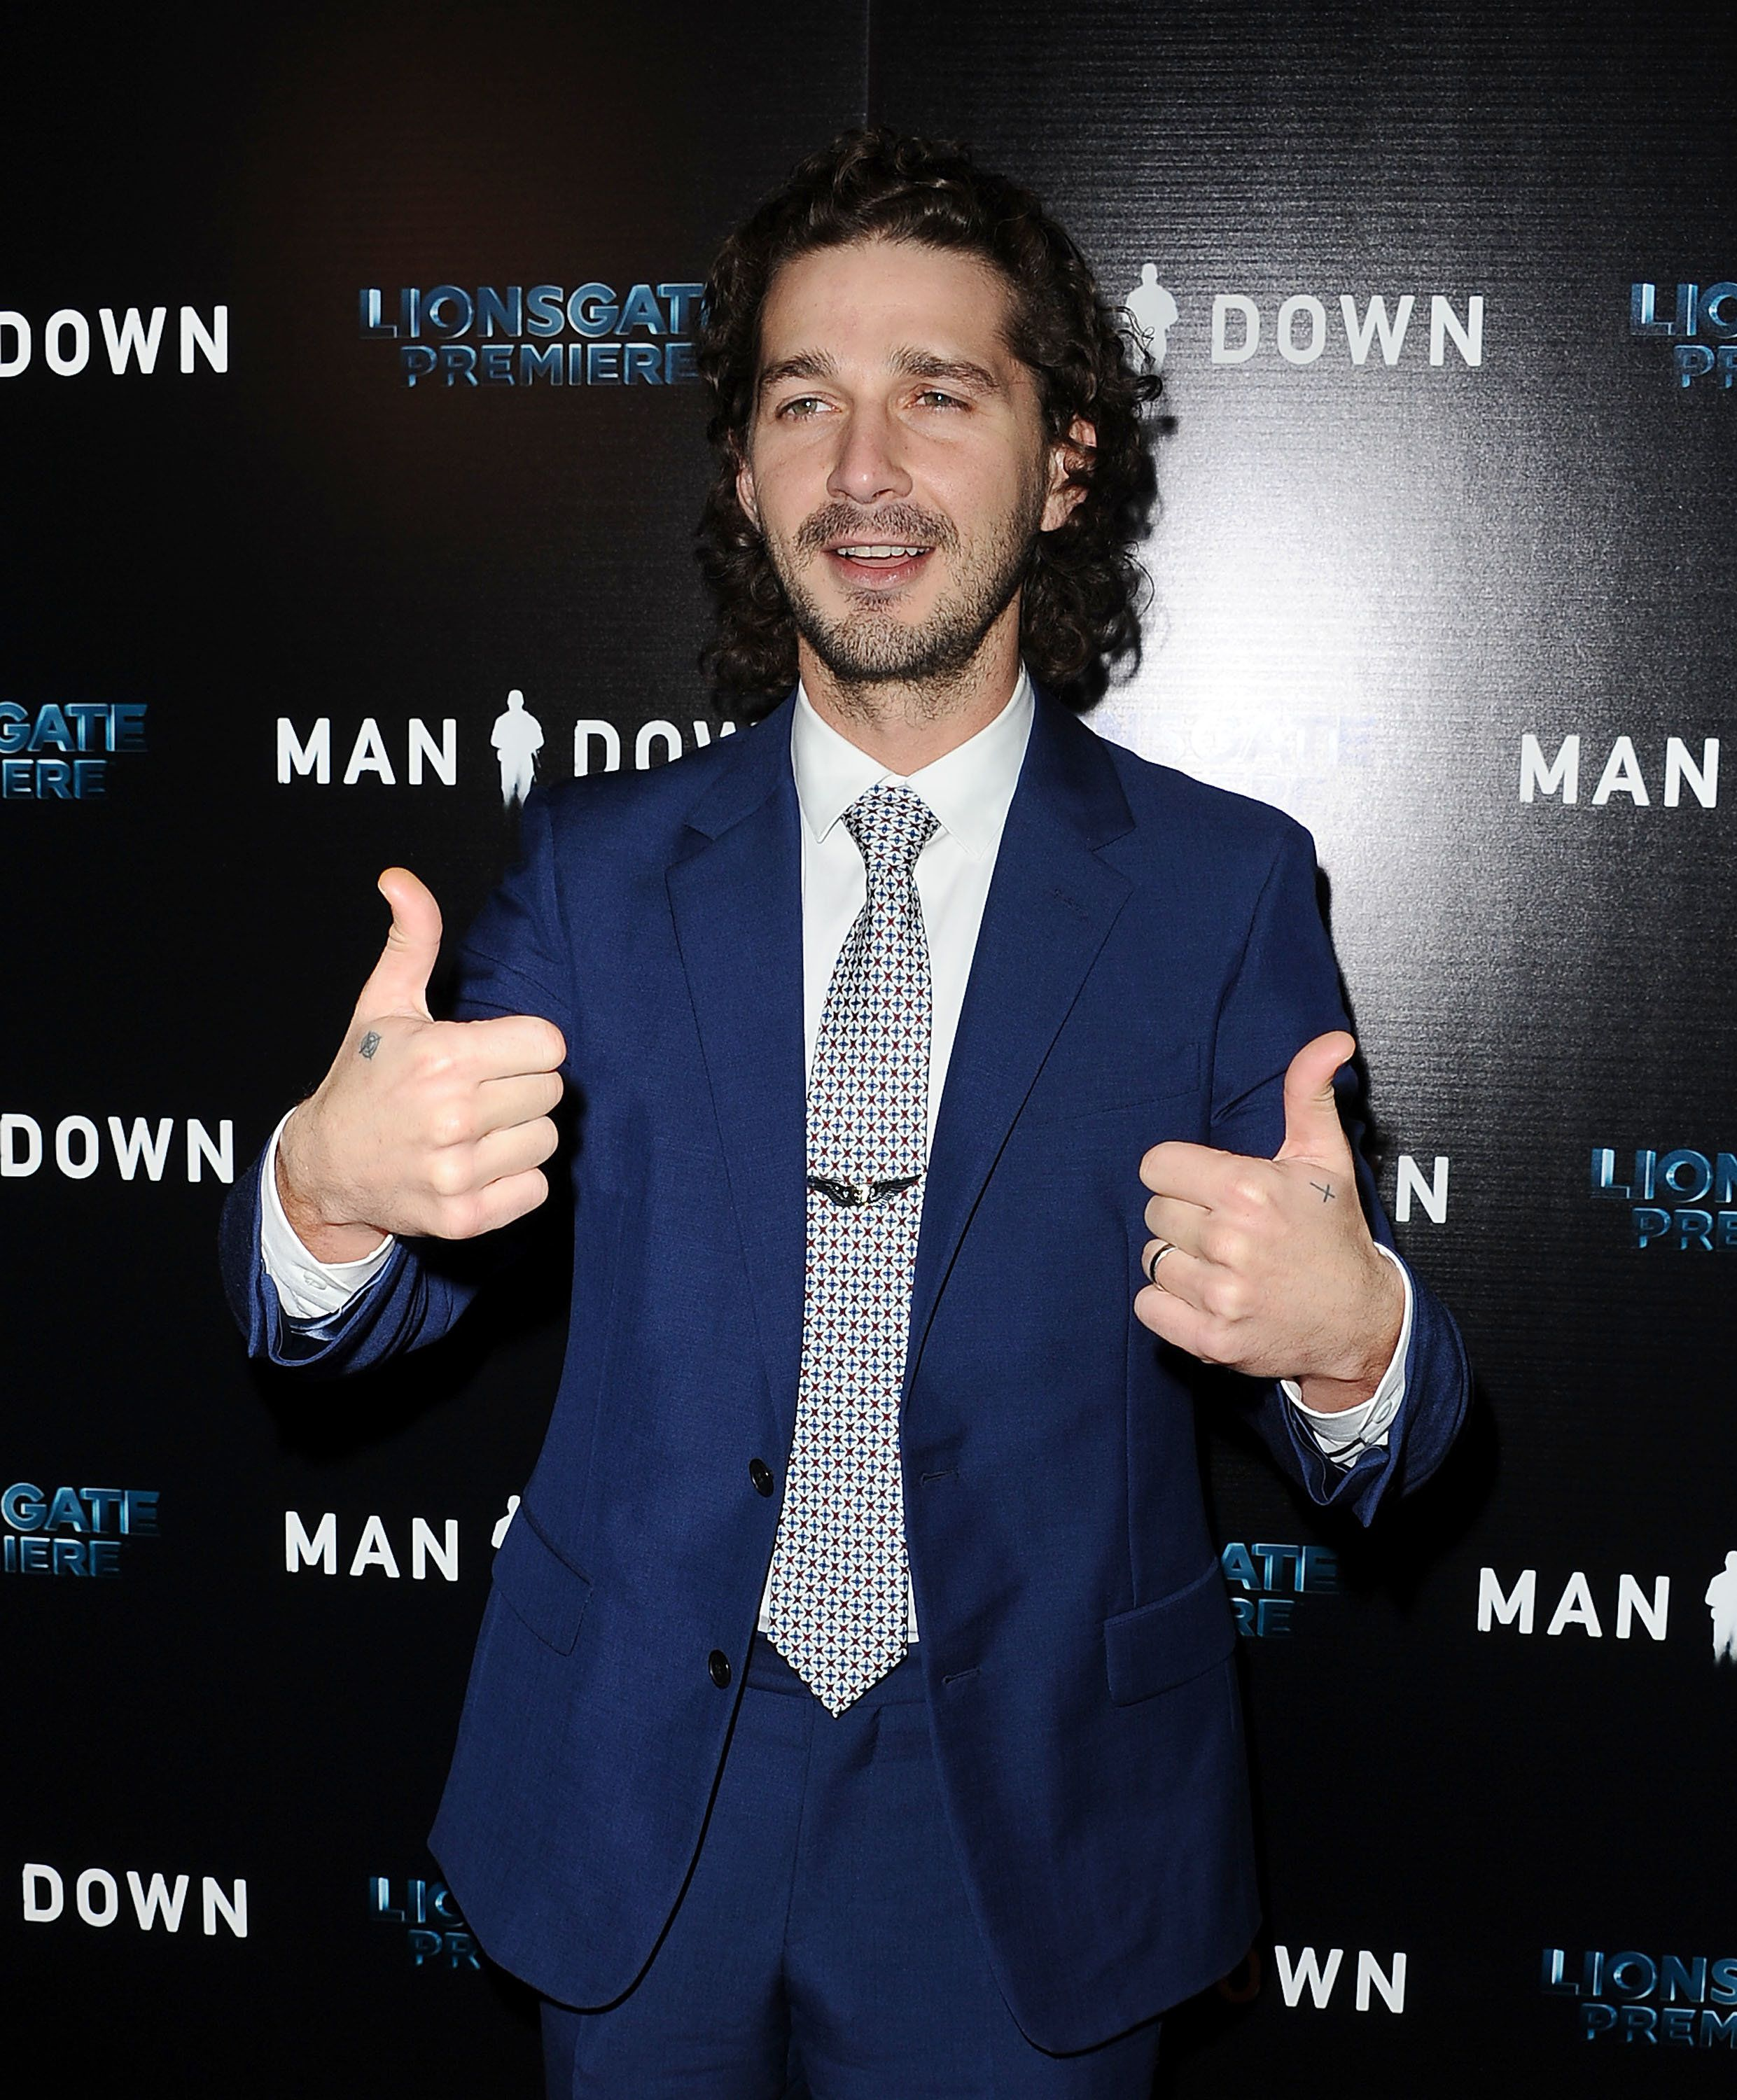 HOLLYWOOD, CA - DECEMBER 01:  Actor Shia LaBeouf attends the premiere of 'Man Down' at ArcLight Hollywood on November 30, 2016 in Hollywood, California.  (Photo by Jason LaVeris/FilmMagic)